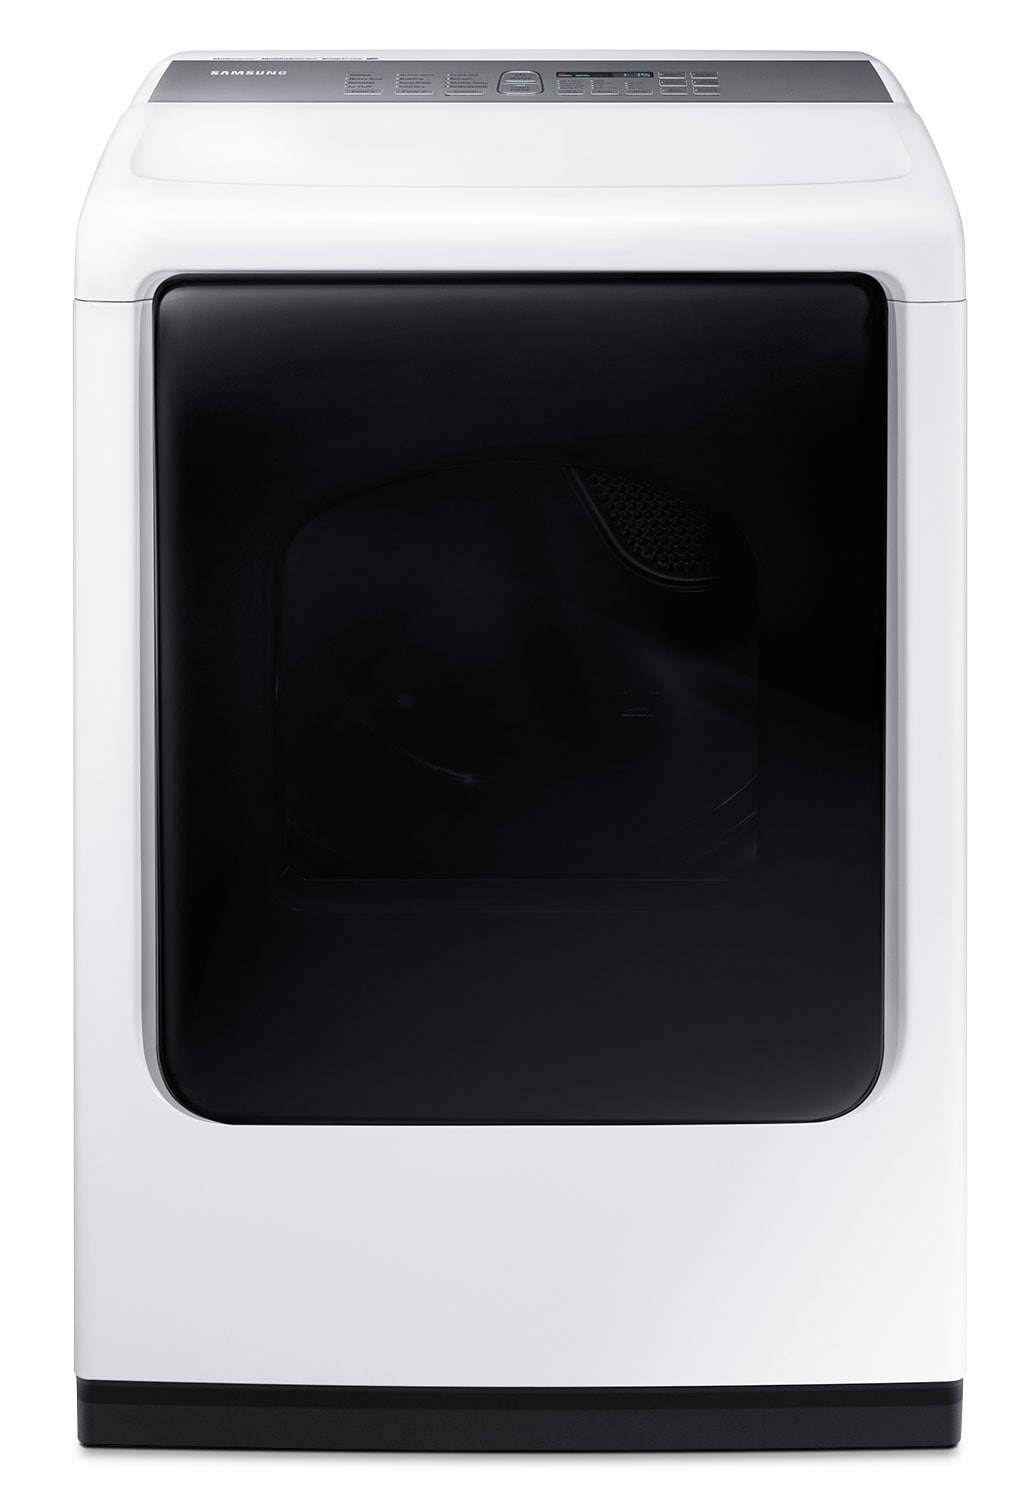 Washers and Dryers - Samsung White Electric Dryer with MultiSteam™ (7.4 Cu. Ft.) - DV45K7600EW/AC